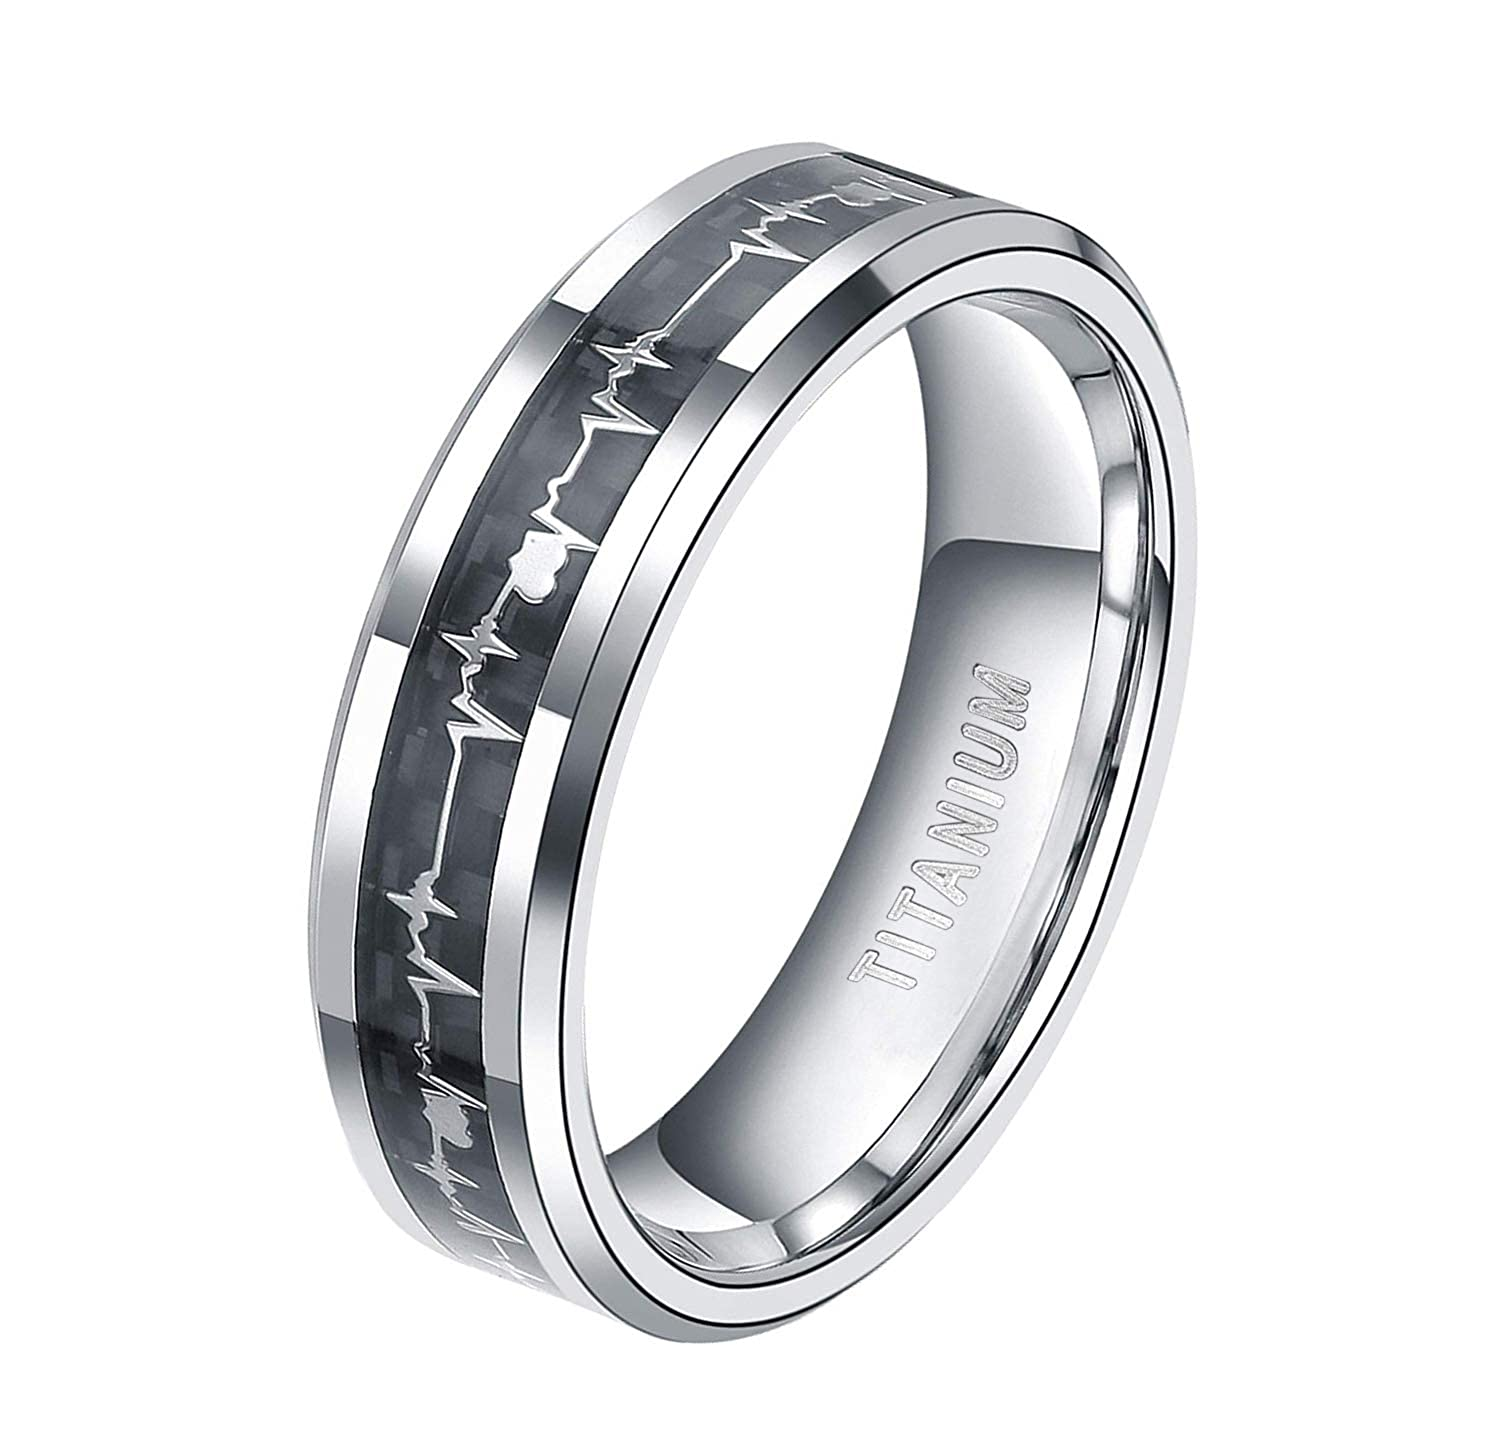 91b09113b61d6 Titanium Rings Heartbeat Black Carbon Fiber Wedding Bands